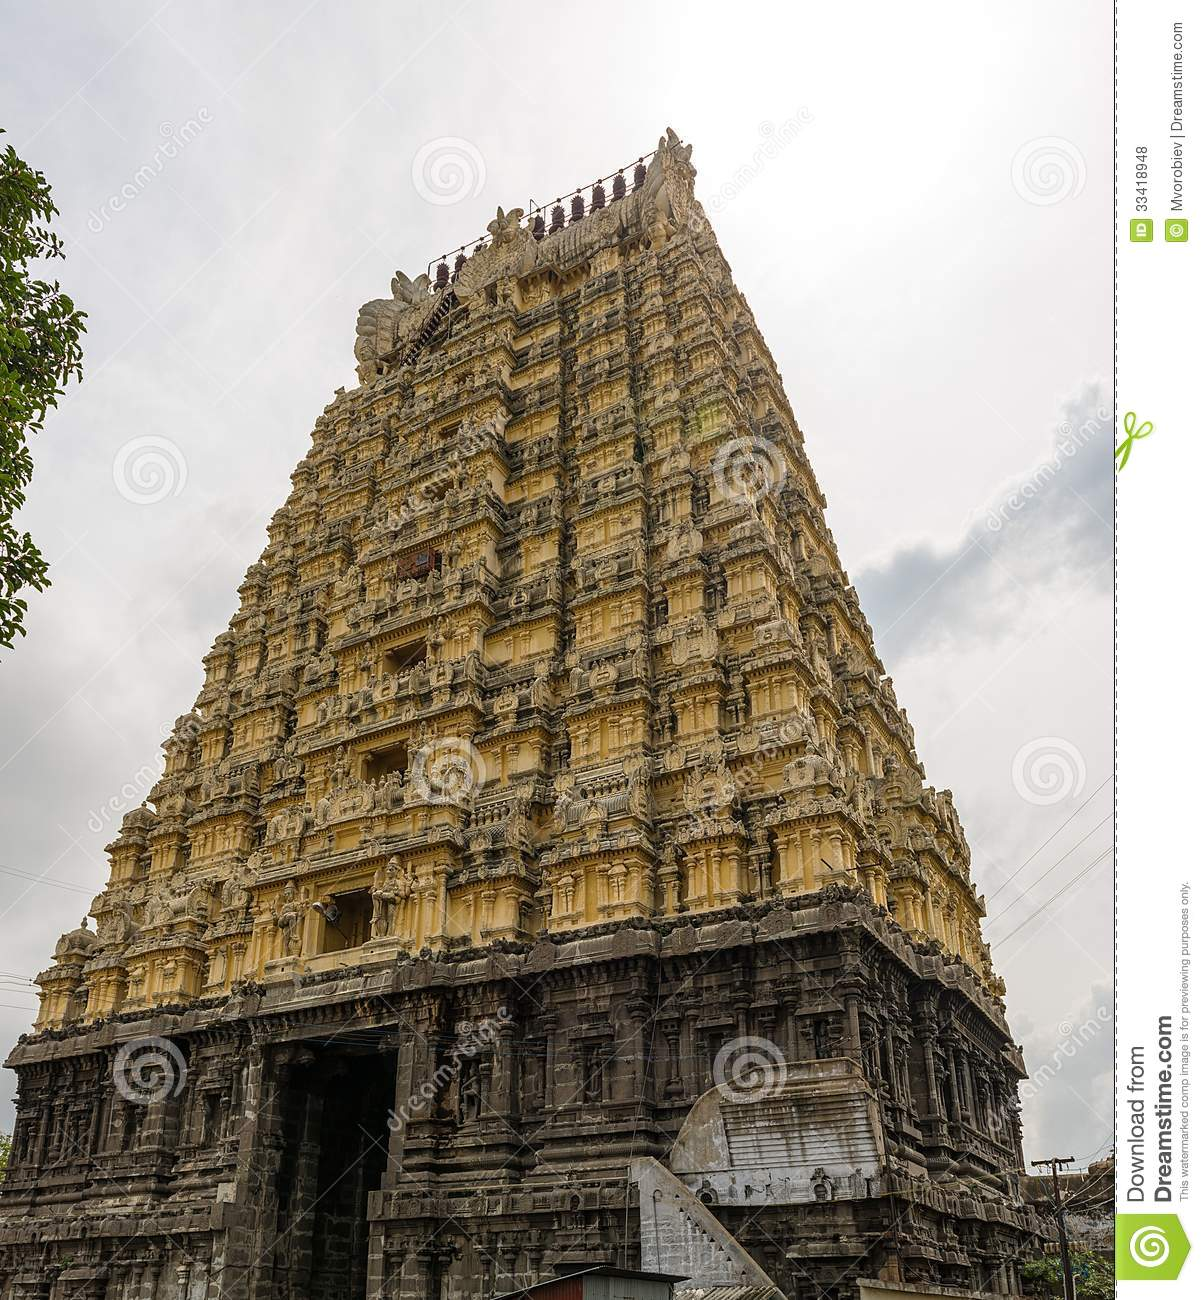 Kanchipuram India  City pictures : India, kanchipuram, Ekambareswarar temple. See my other works in ...